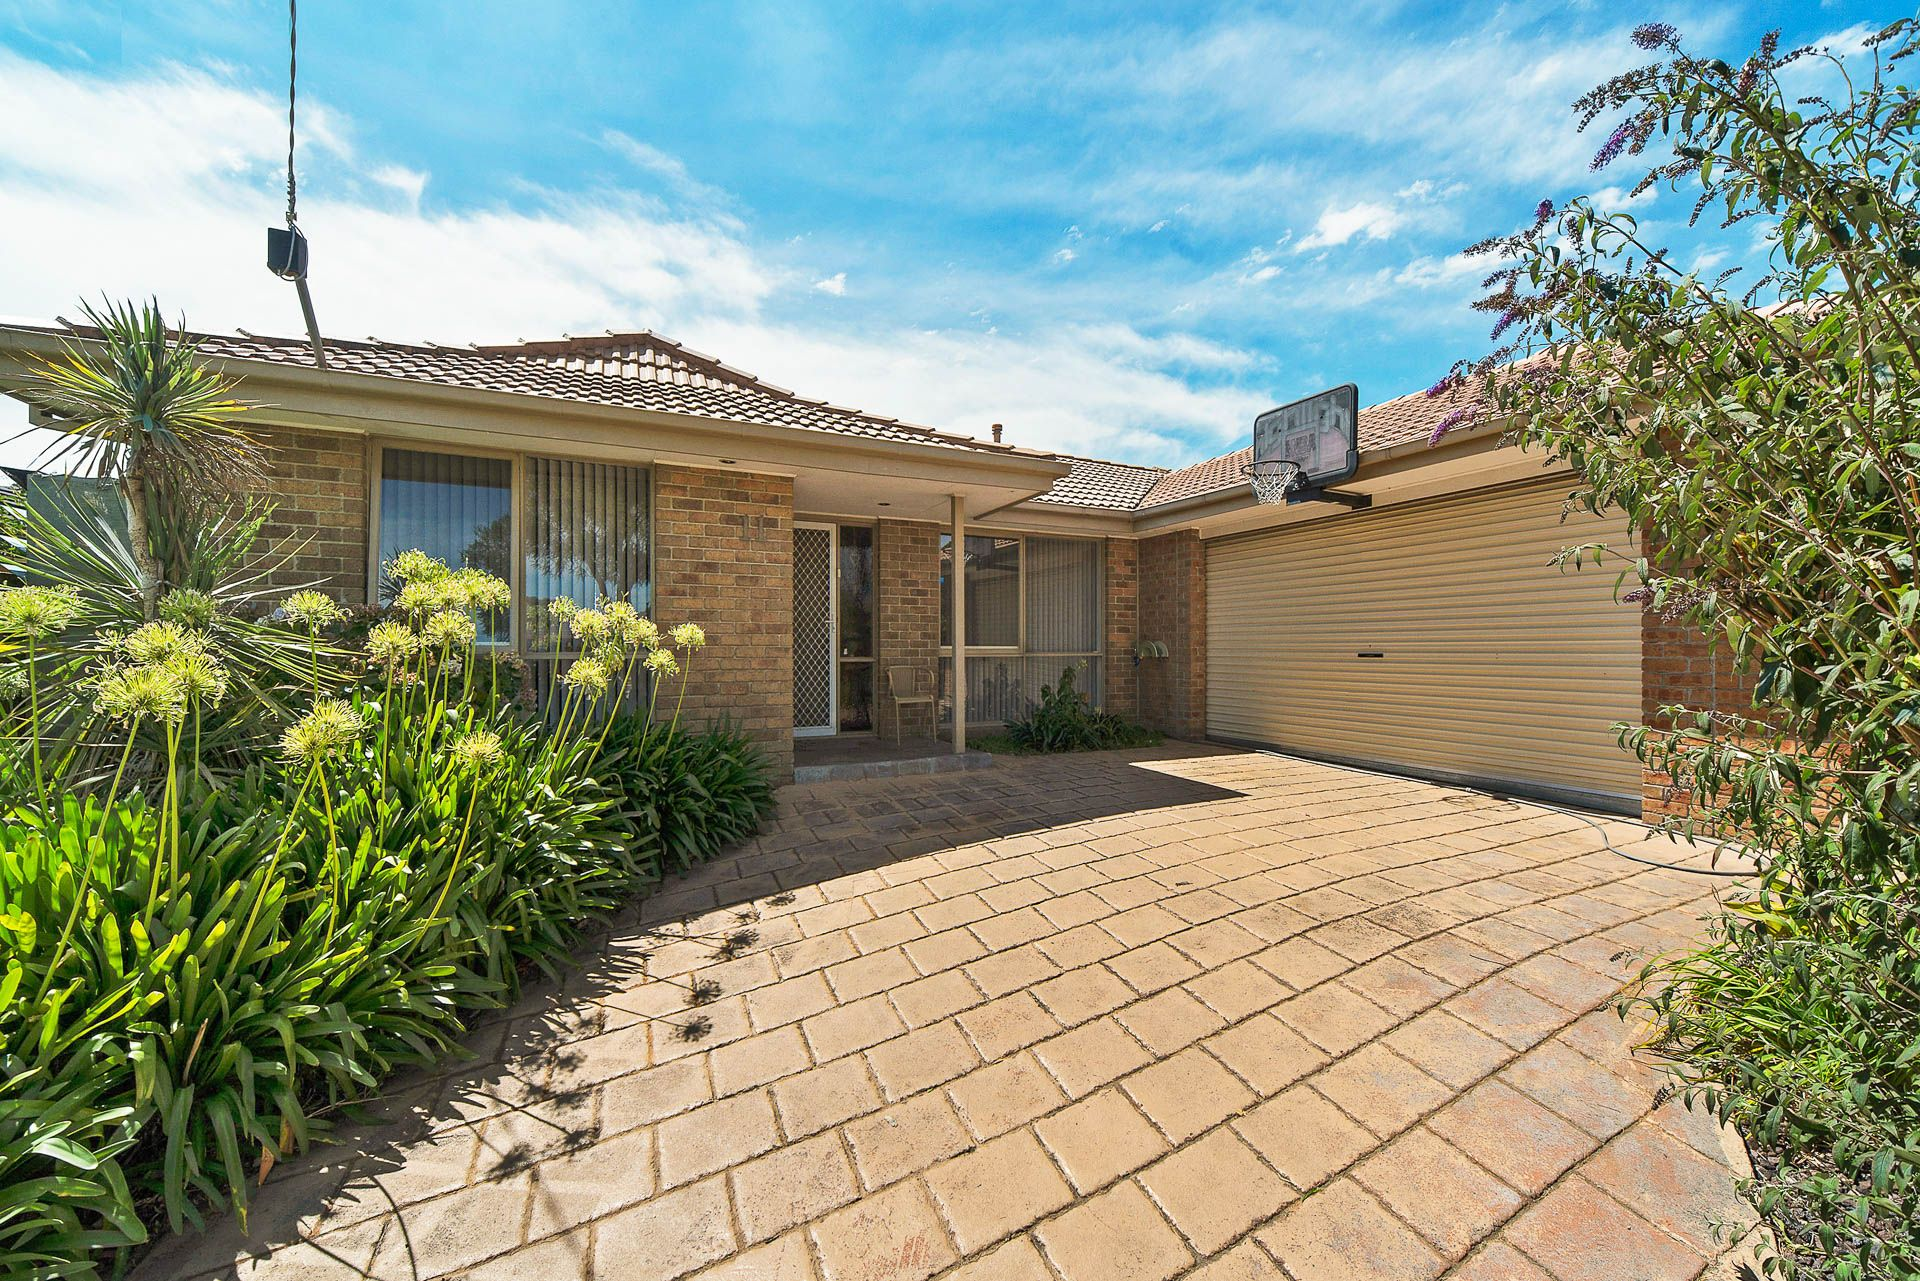 11 Allied Drive, CARRUM DOWNS, VIC, 3201 - Image